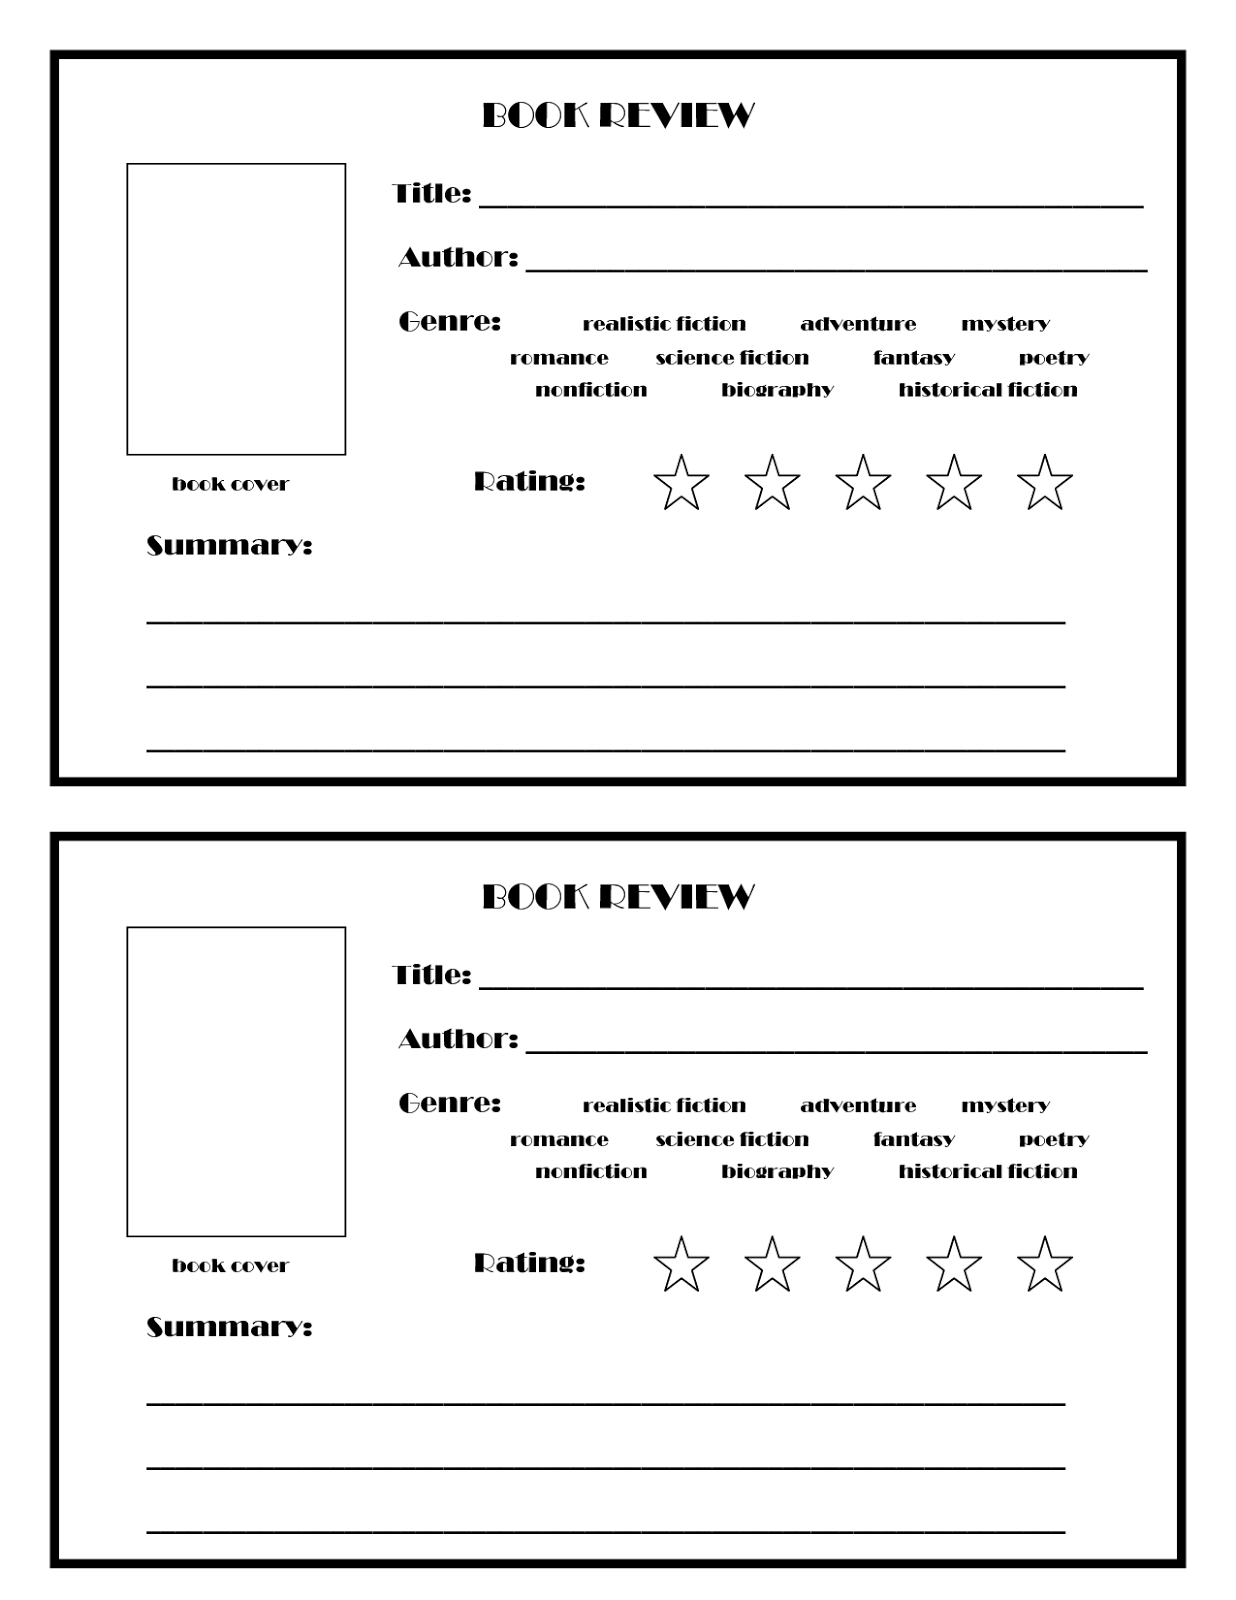 SERENITY AND SERENDIPITY: Book Review Template